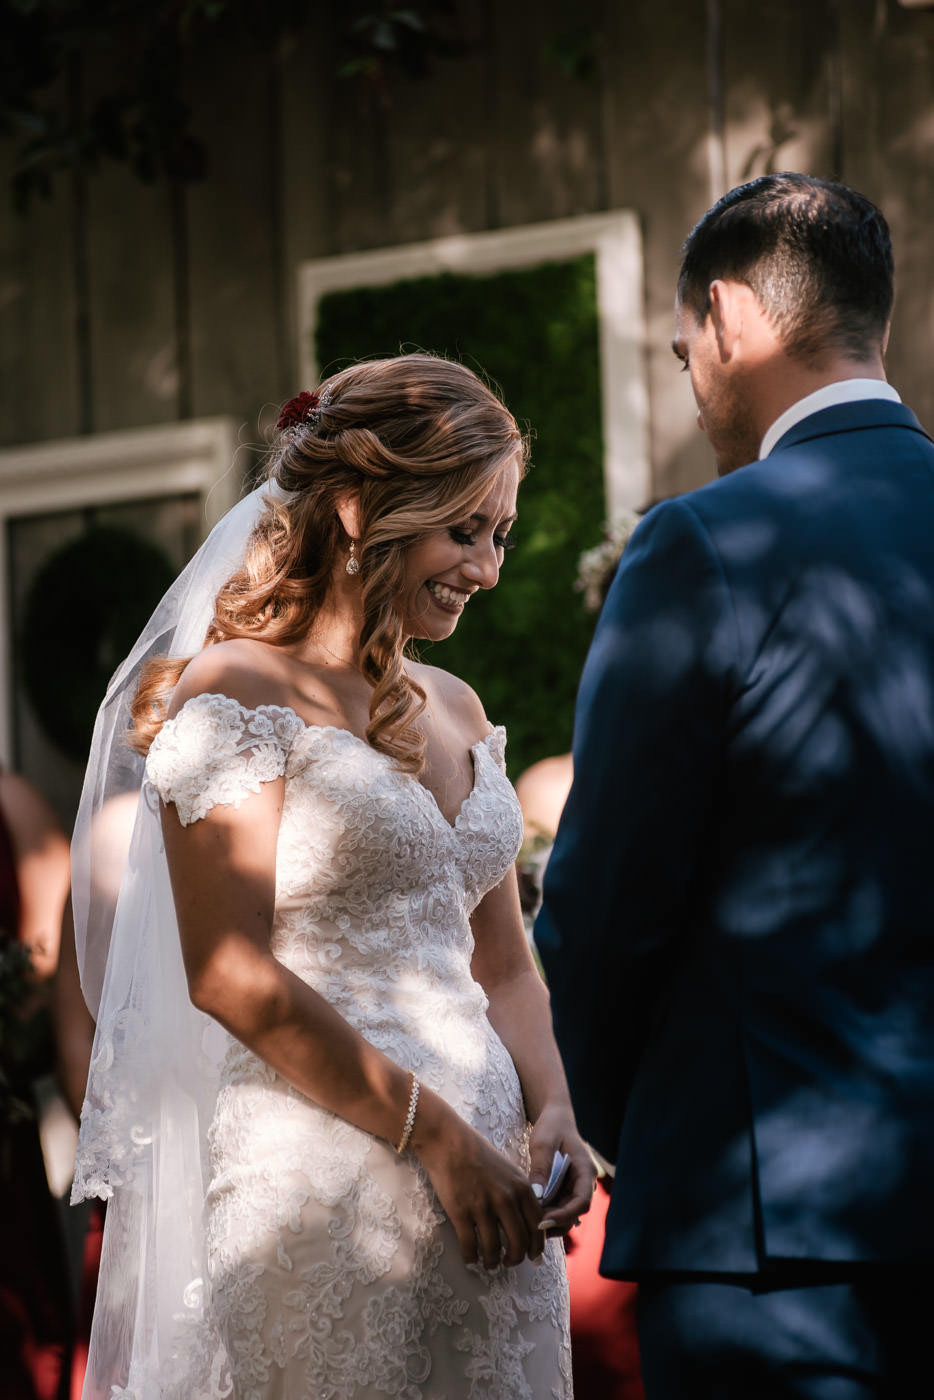 Bride is all smiles as her husband makes his marriage vows at their rustic wedding at The Homestead.